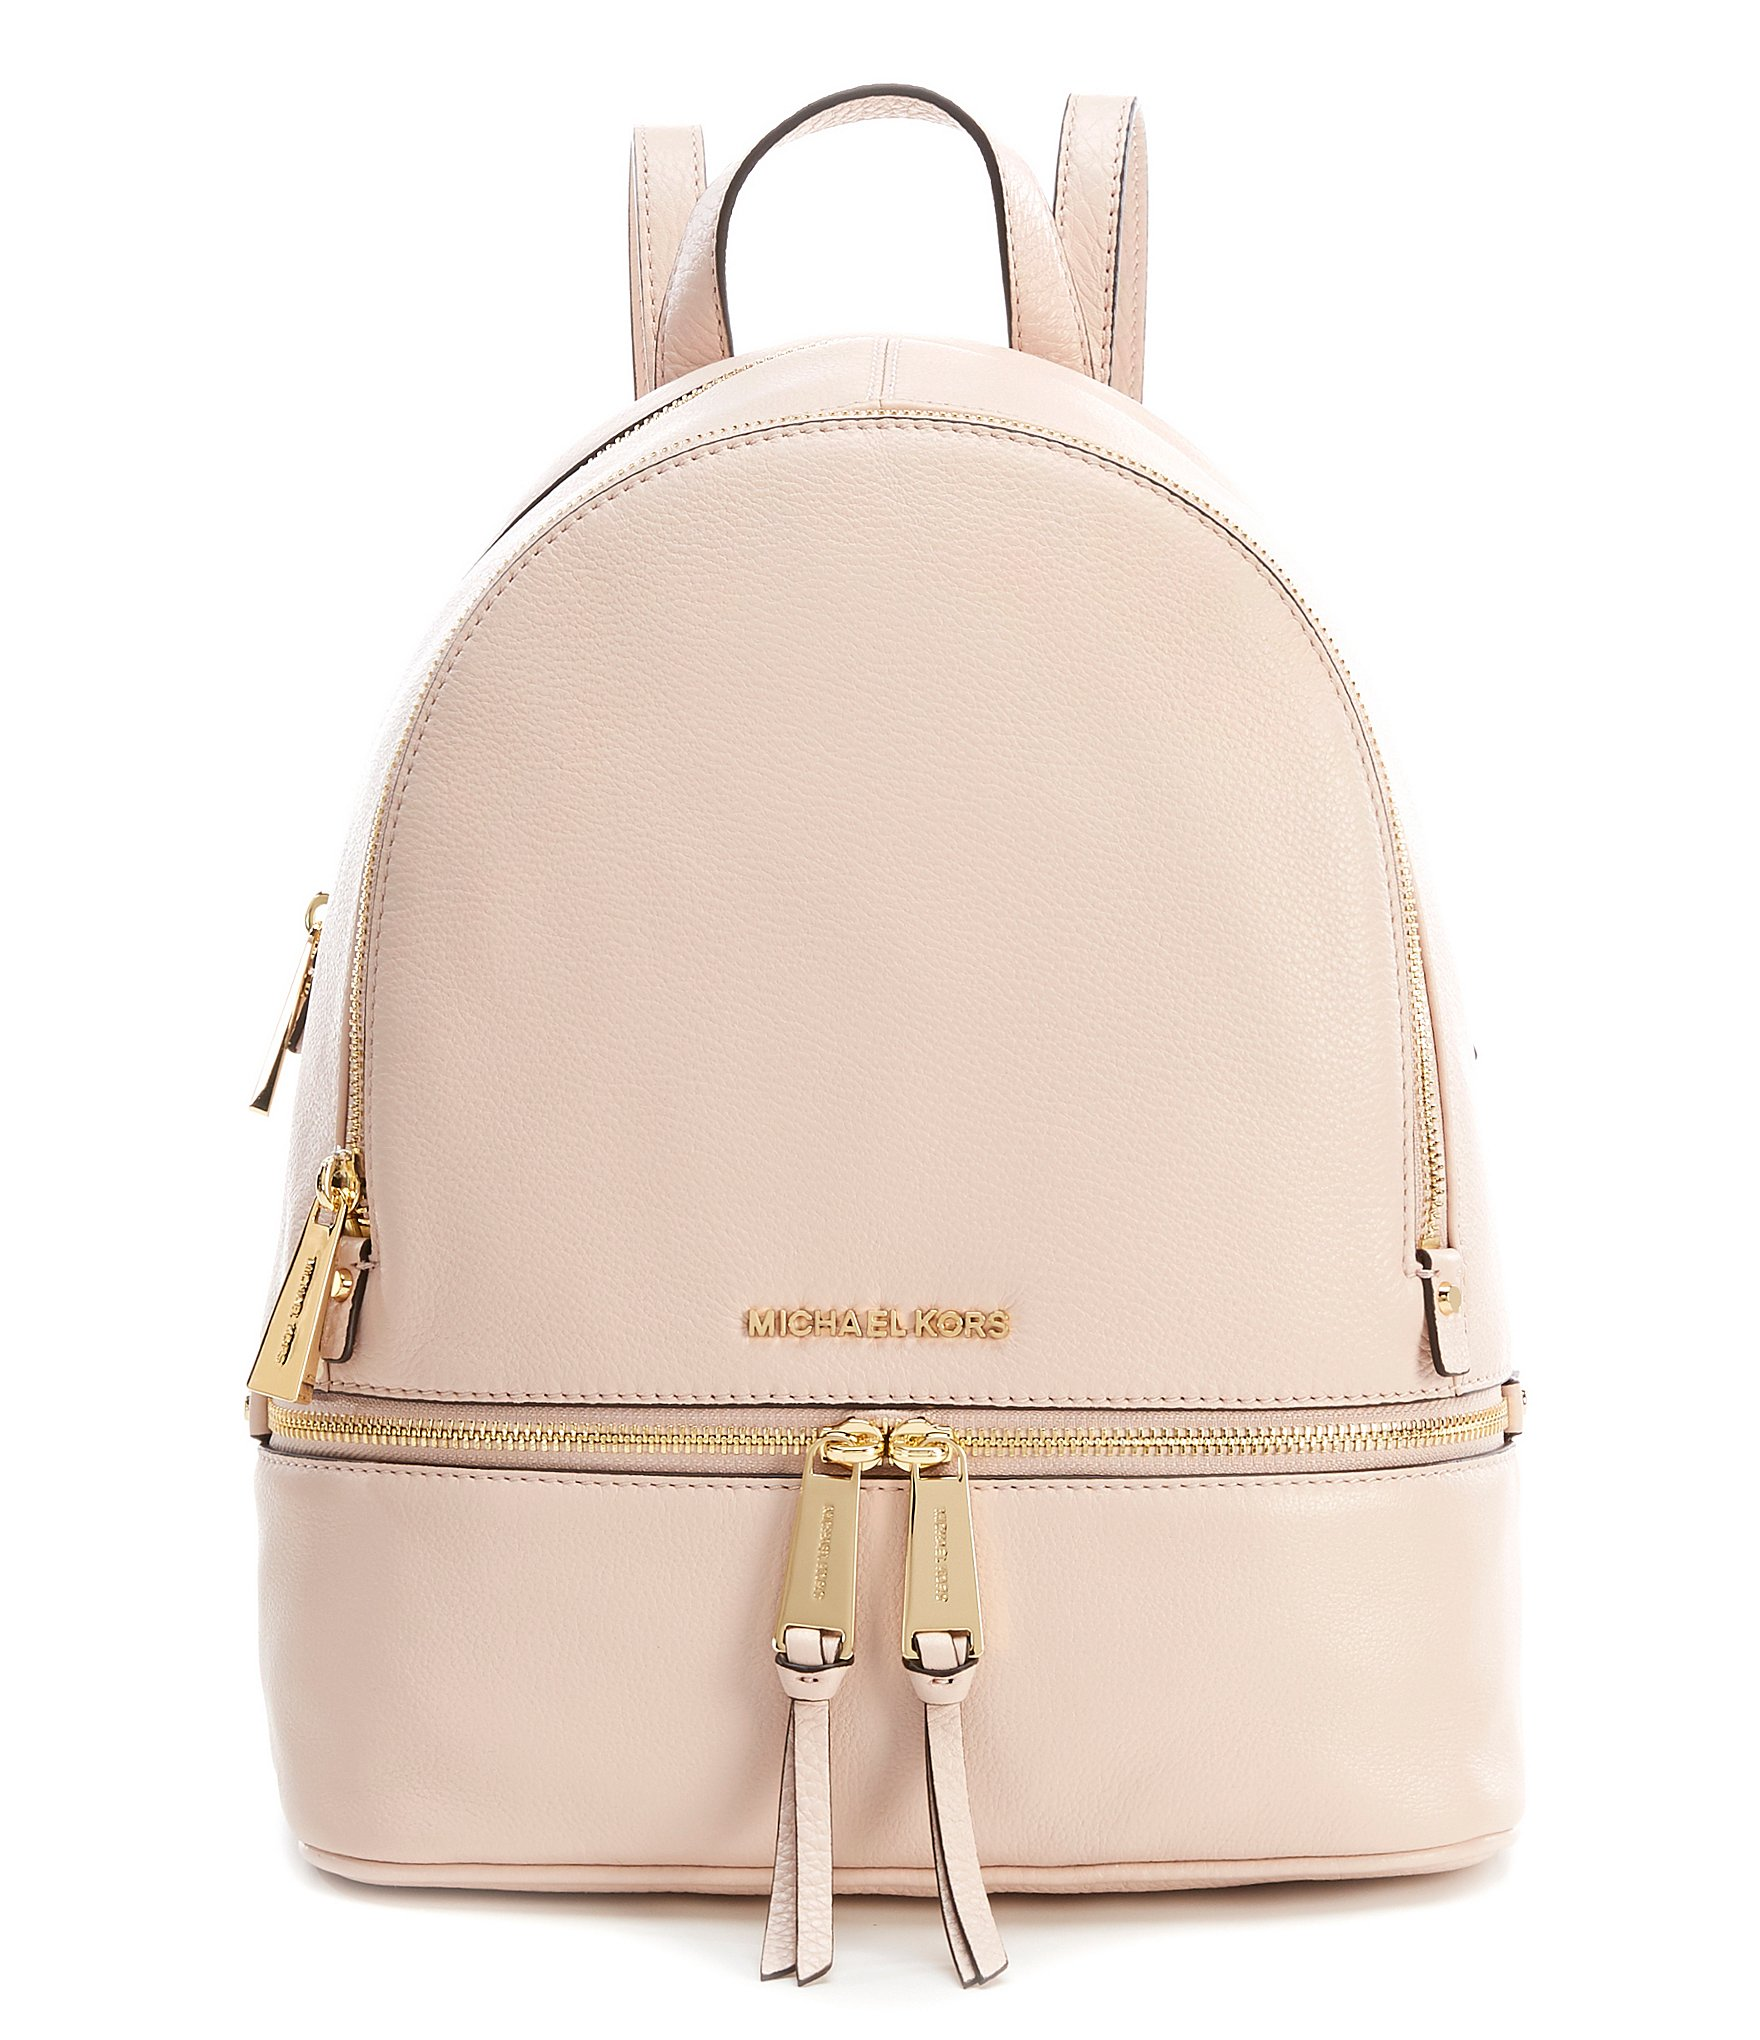 8713ab3e1b MICHAEL Michael Kors Rhea Zip Medium Pebble Leather Backpack ...